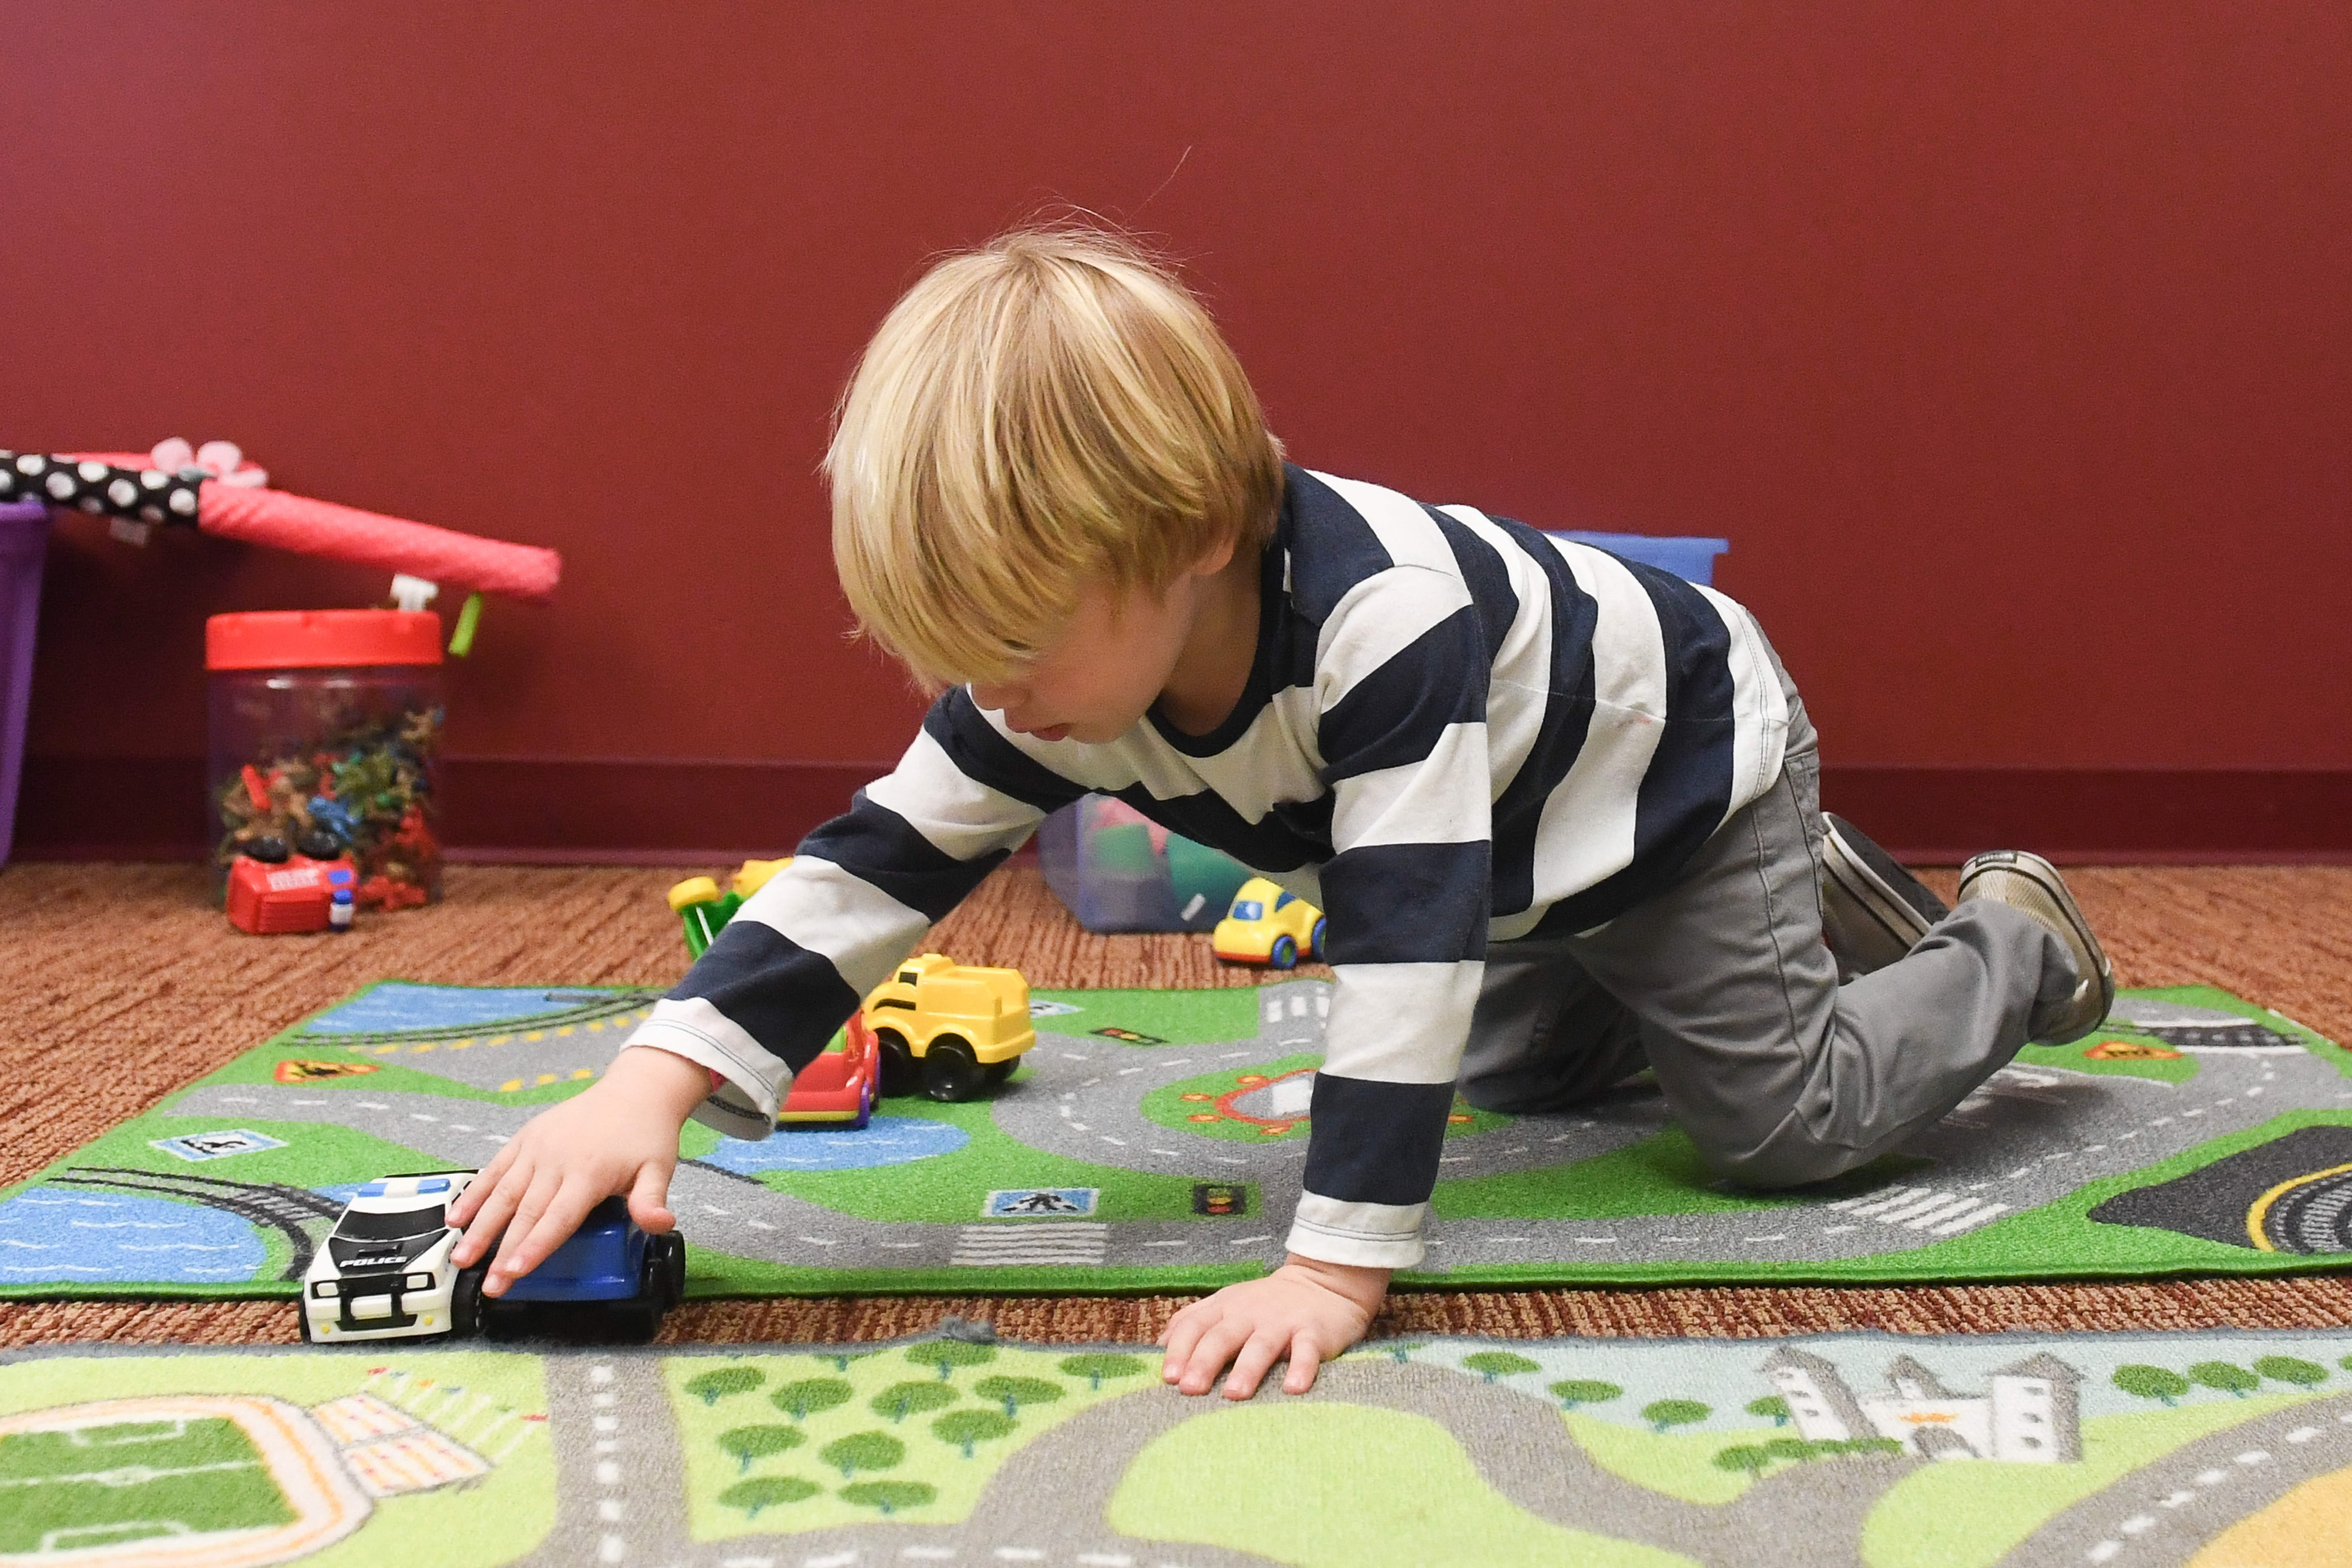 small boy playing with toy cars